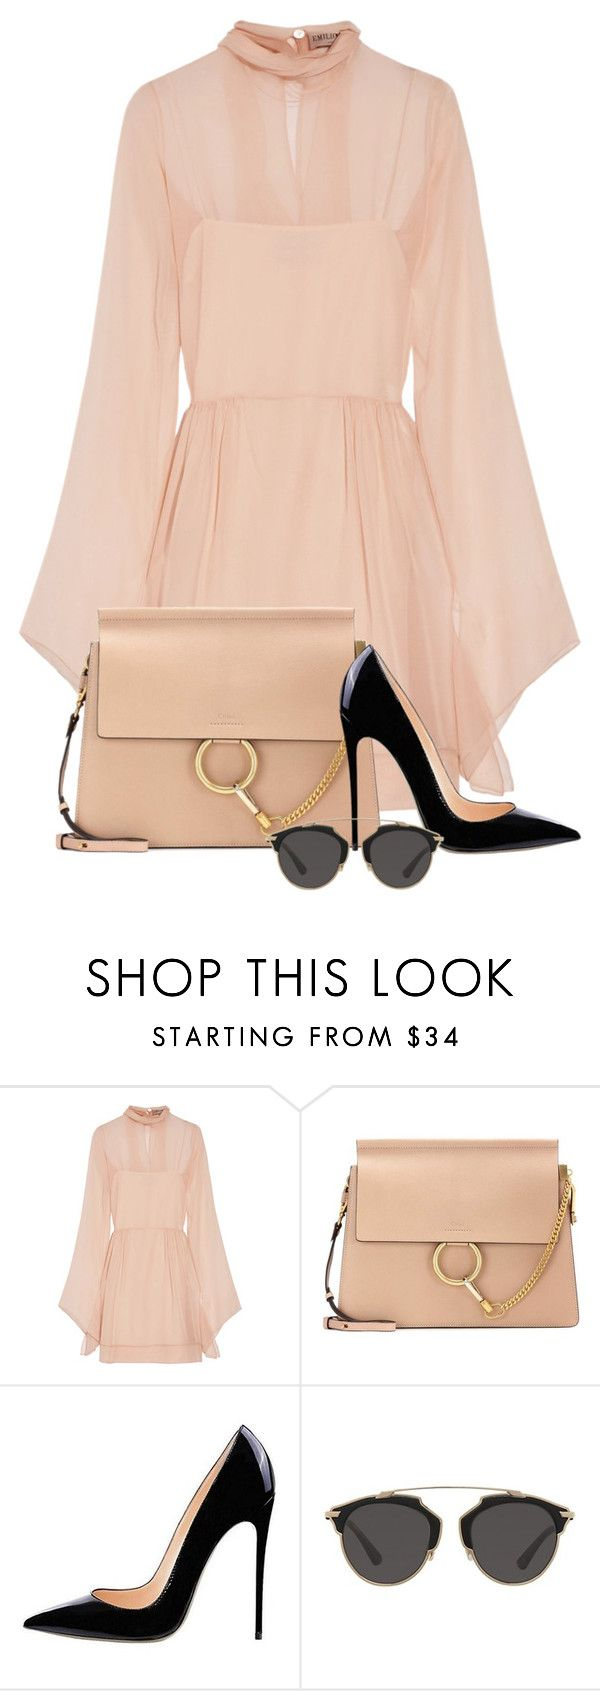 """""""TFPOutfit"""" by burlsgurl ❤ liked on Polyvore featuring Emilio Pucci, Chloé and Christian Dior"""